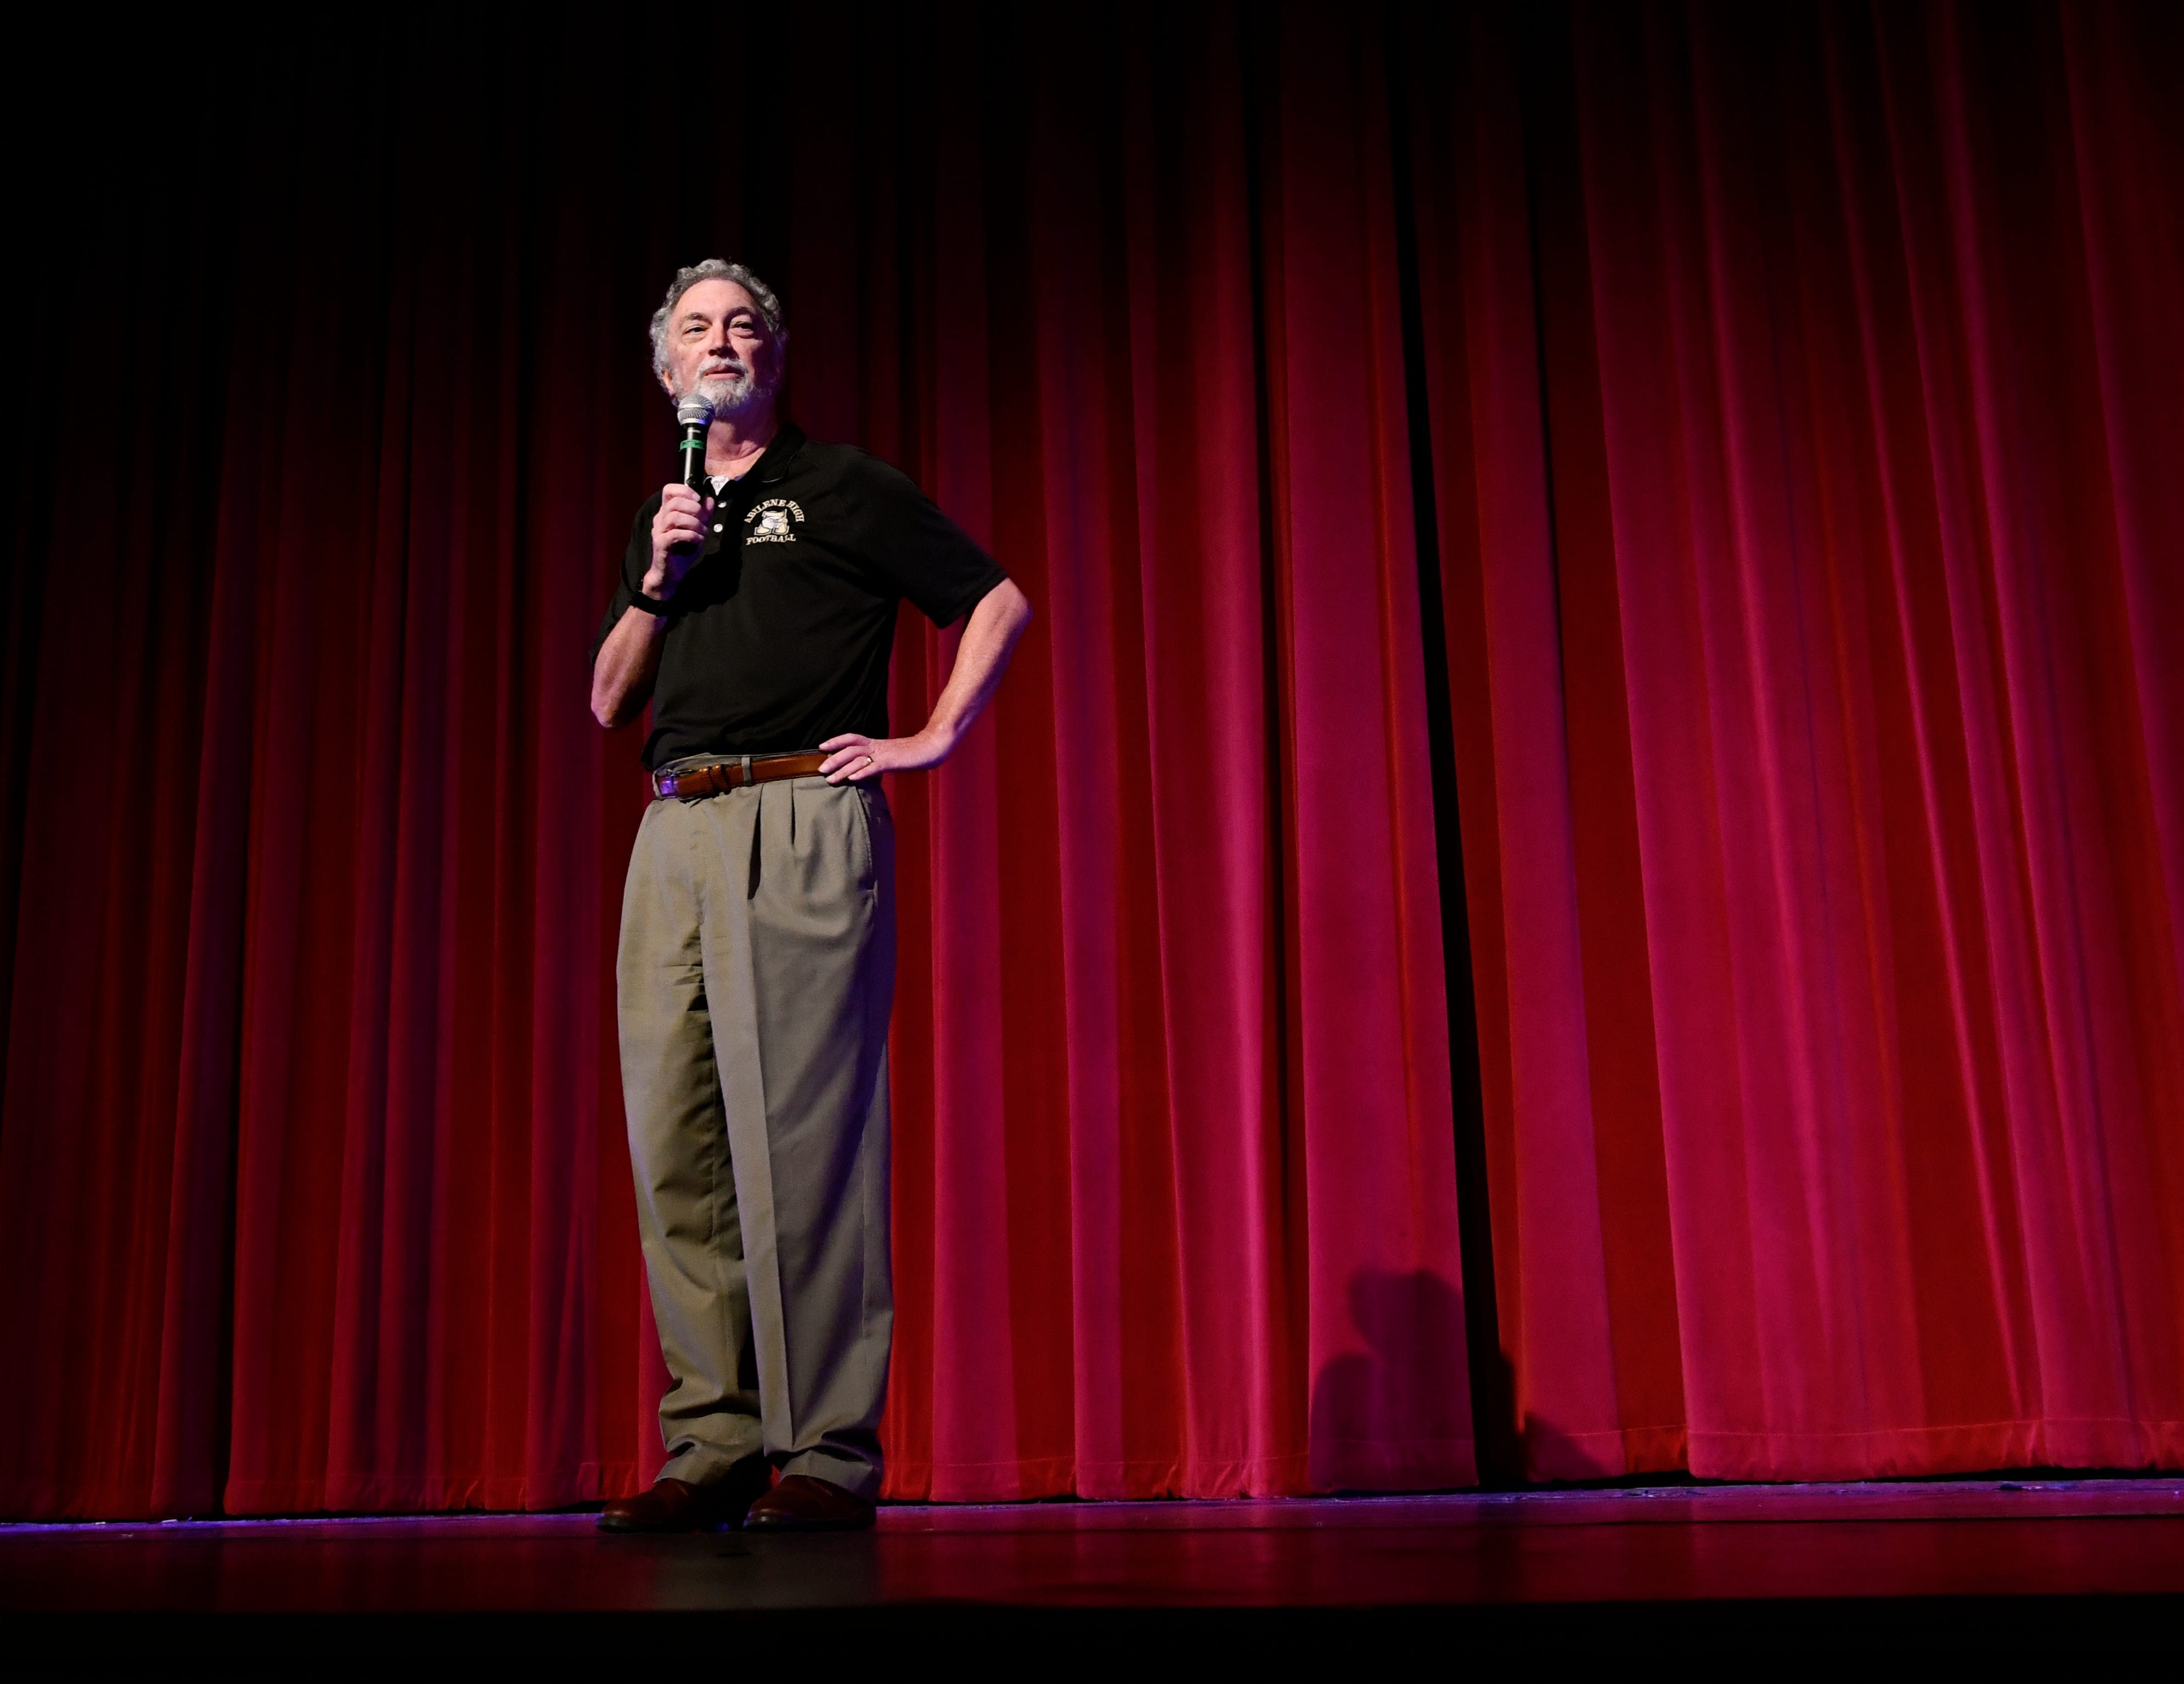 """Al Pickett, former sports editor for the Abilene Reporter-News, speaks during a preview July 27 for the film, """"Brother's Keeper,"""" at the Paramount Theatre. The movie is based on his book about the 2009 Abilene High School championship football season."""